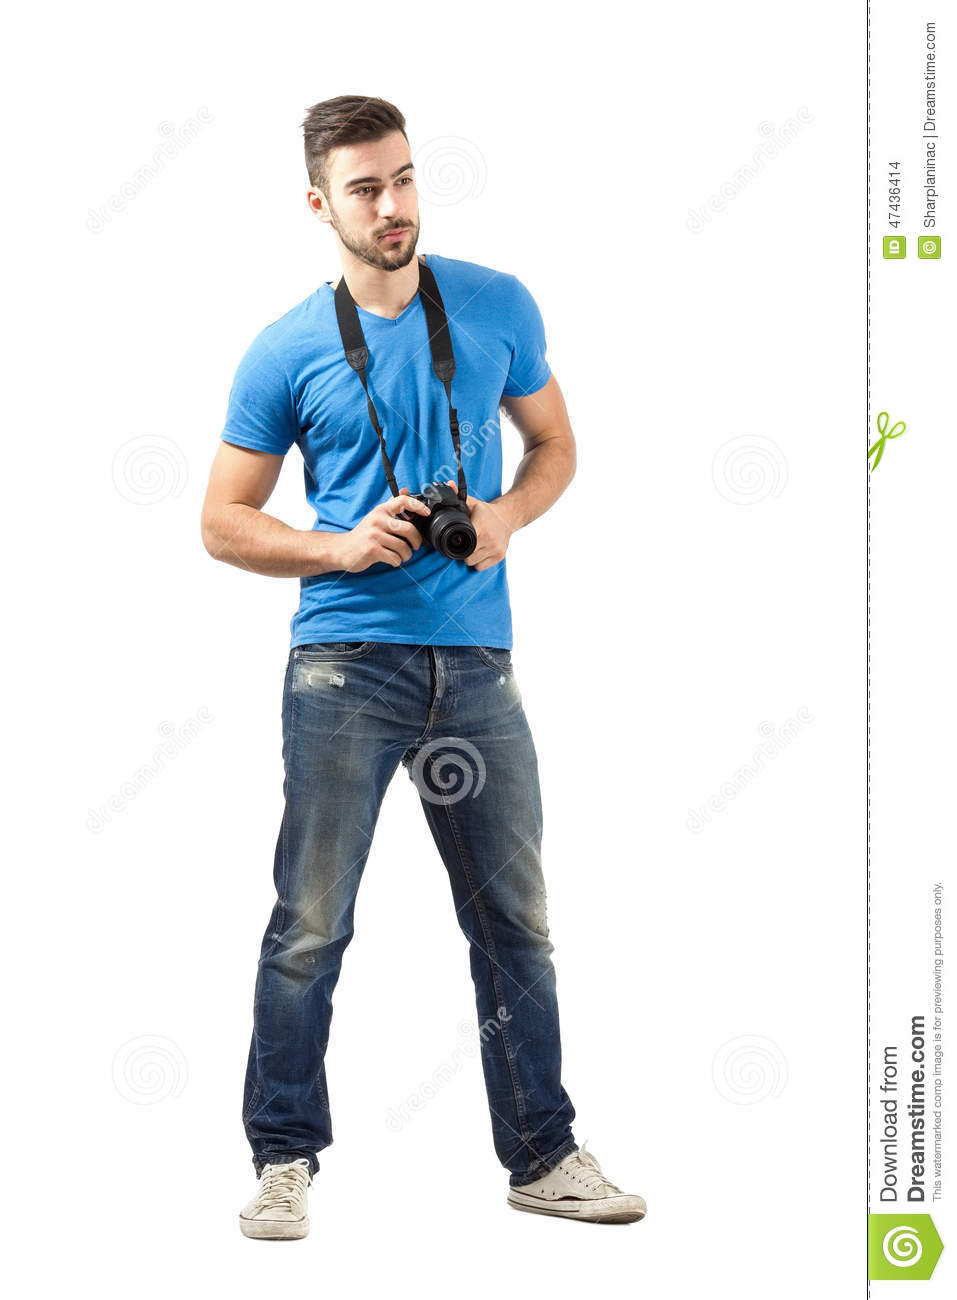 Cartoon Person Standing Related Keywords - Cartoon Person ...